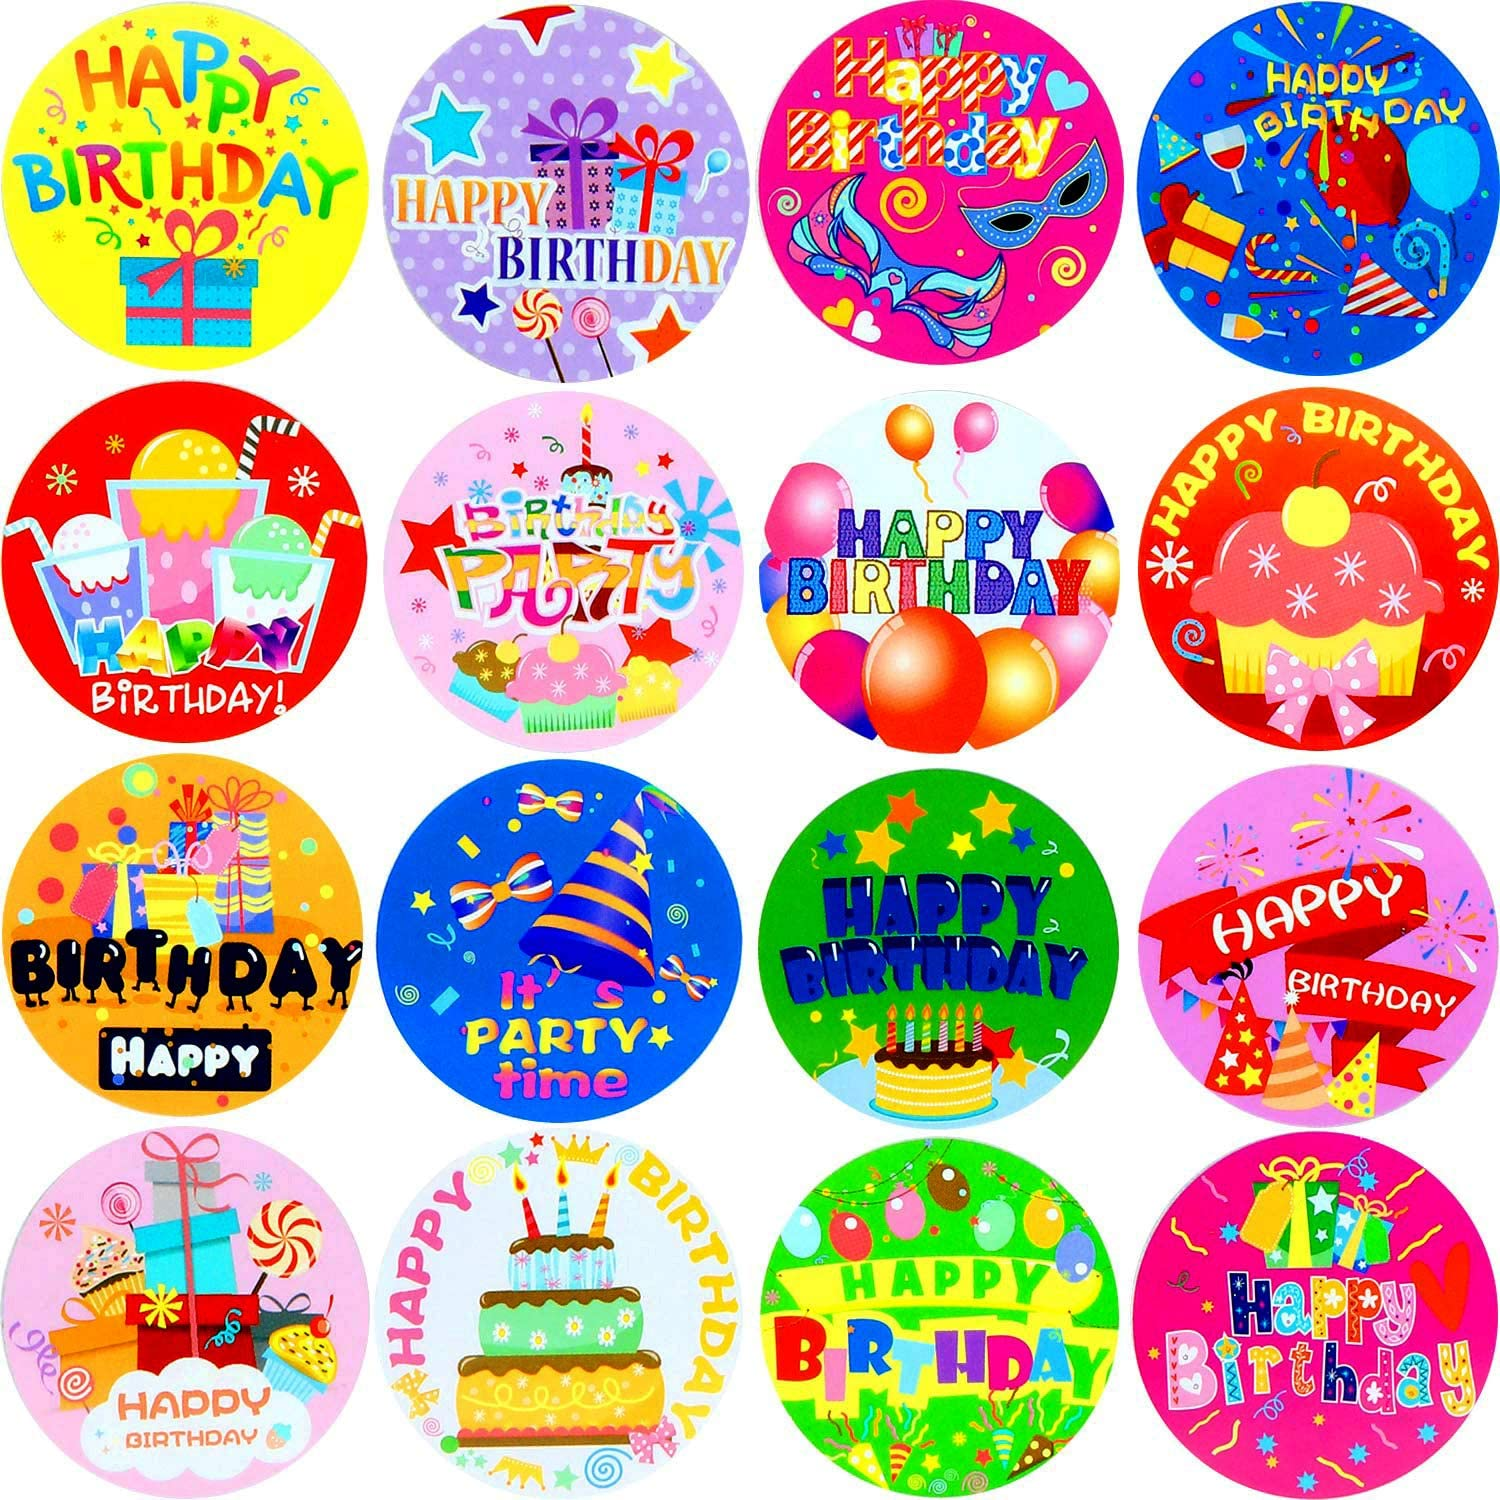 58 x 7.5 Kraft Paper Sticker with Happy Birthday Personalized Design Set of 10 Stickers Customized Foiled Party Favor Labels